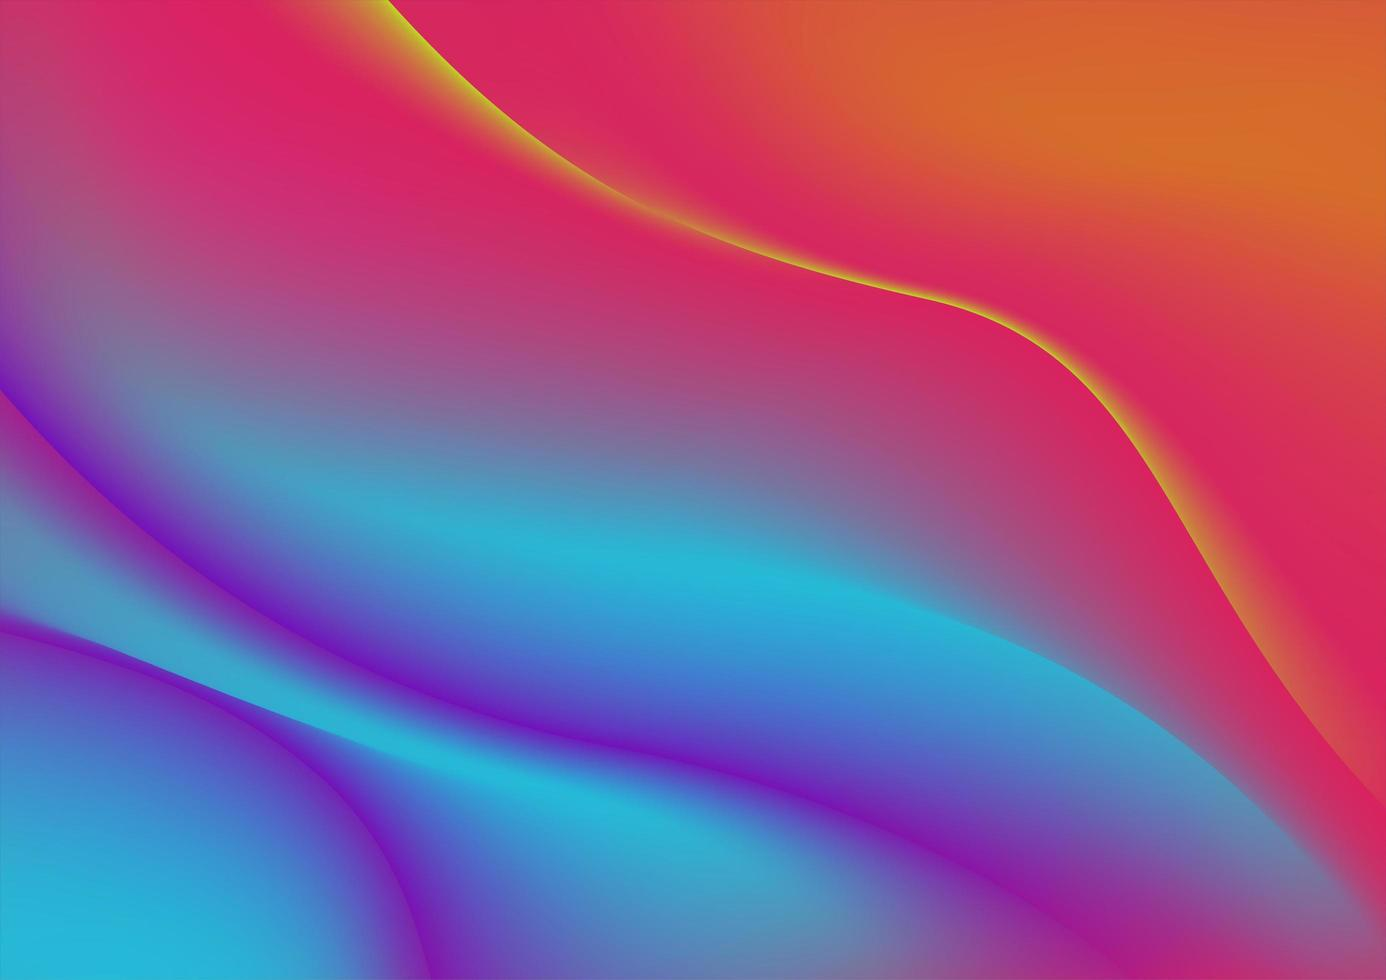 Abstract Colorful Distorted Fabric vector